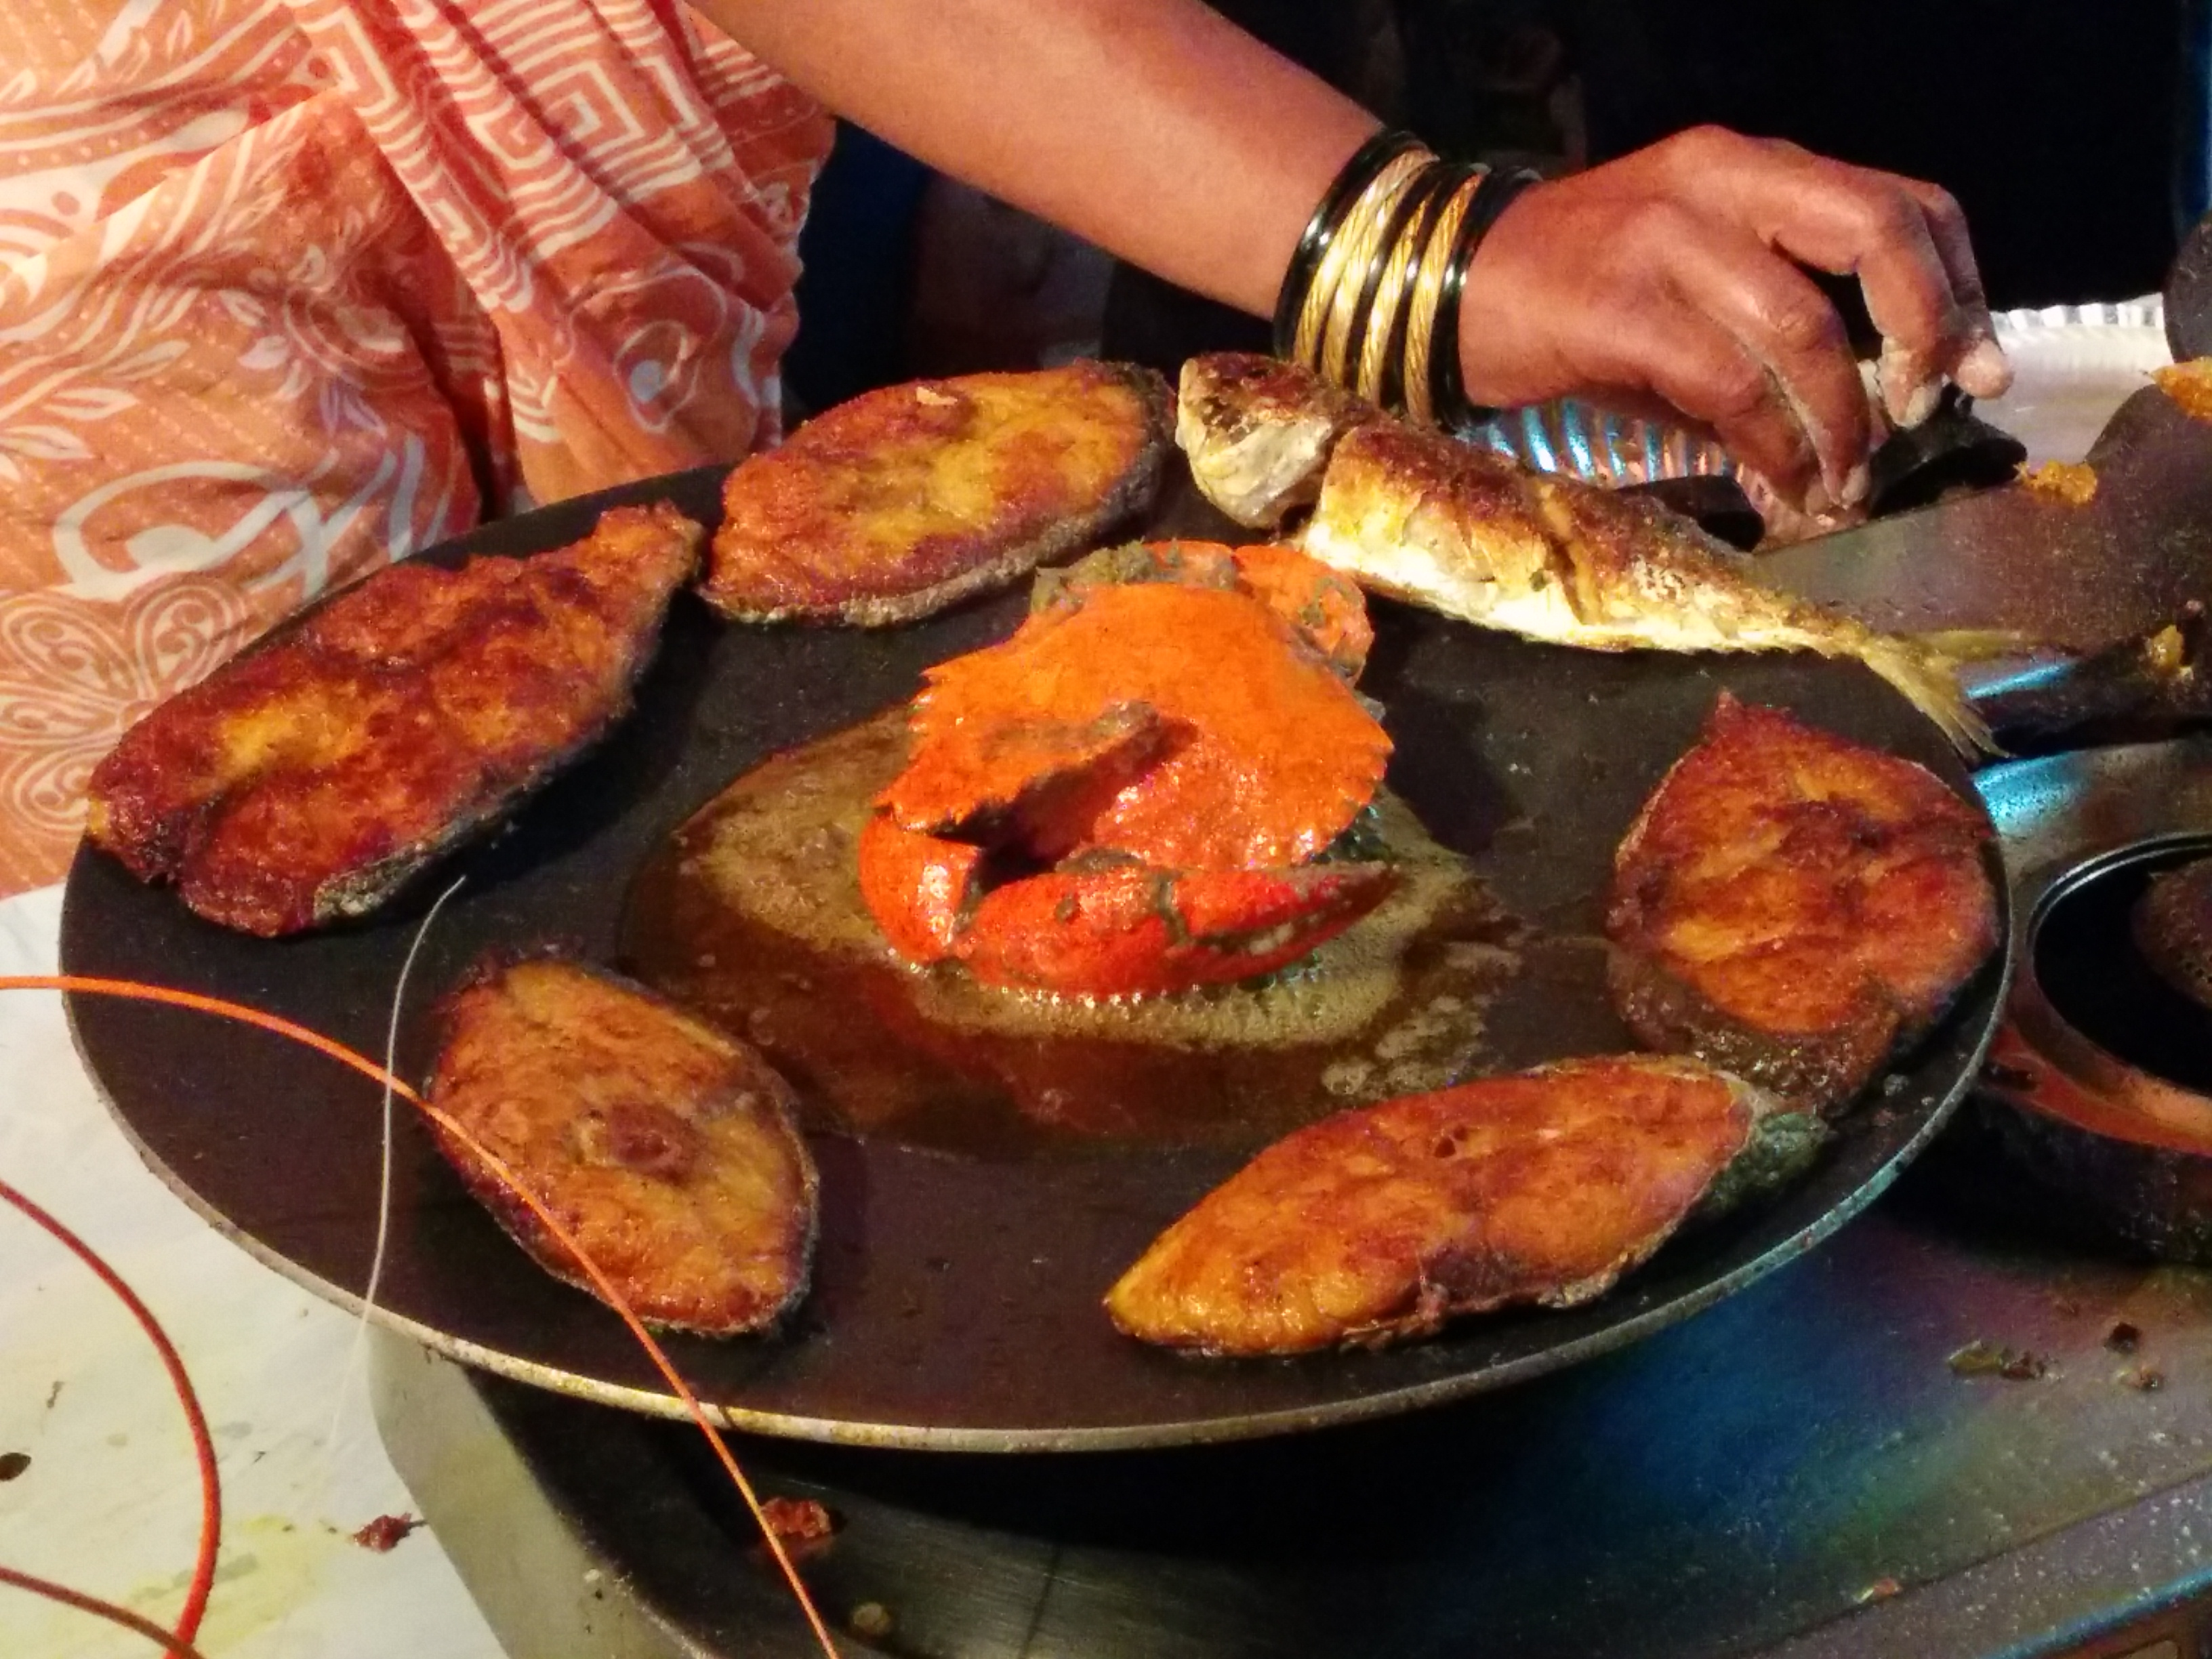 India food trends 2015 what will keep you hungry for more for Local fish fry